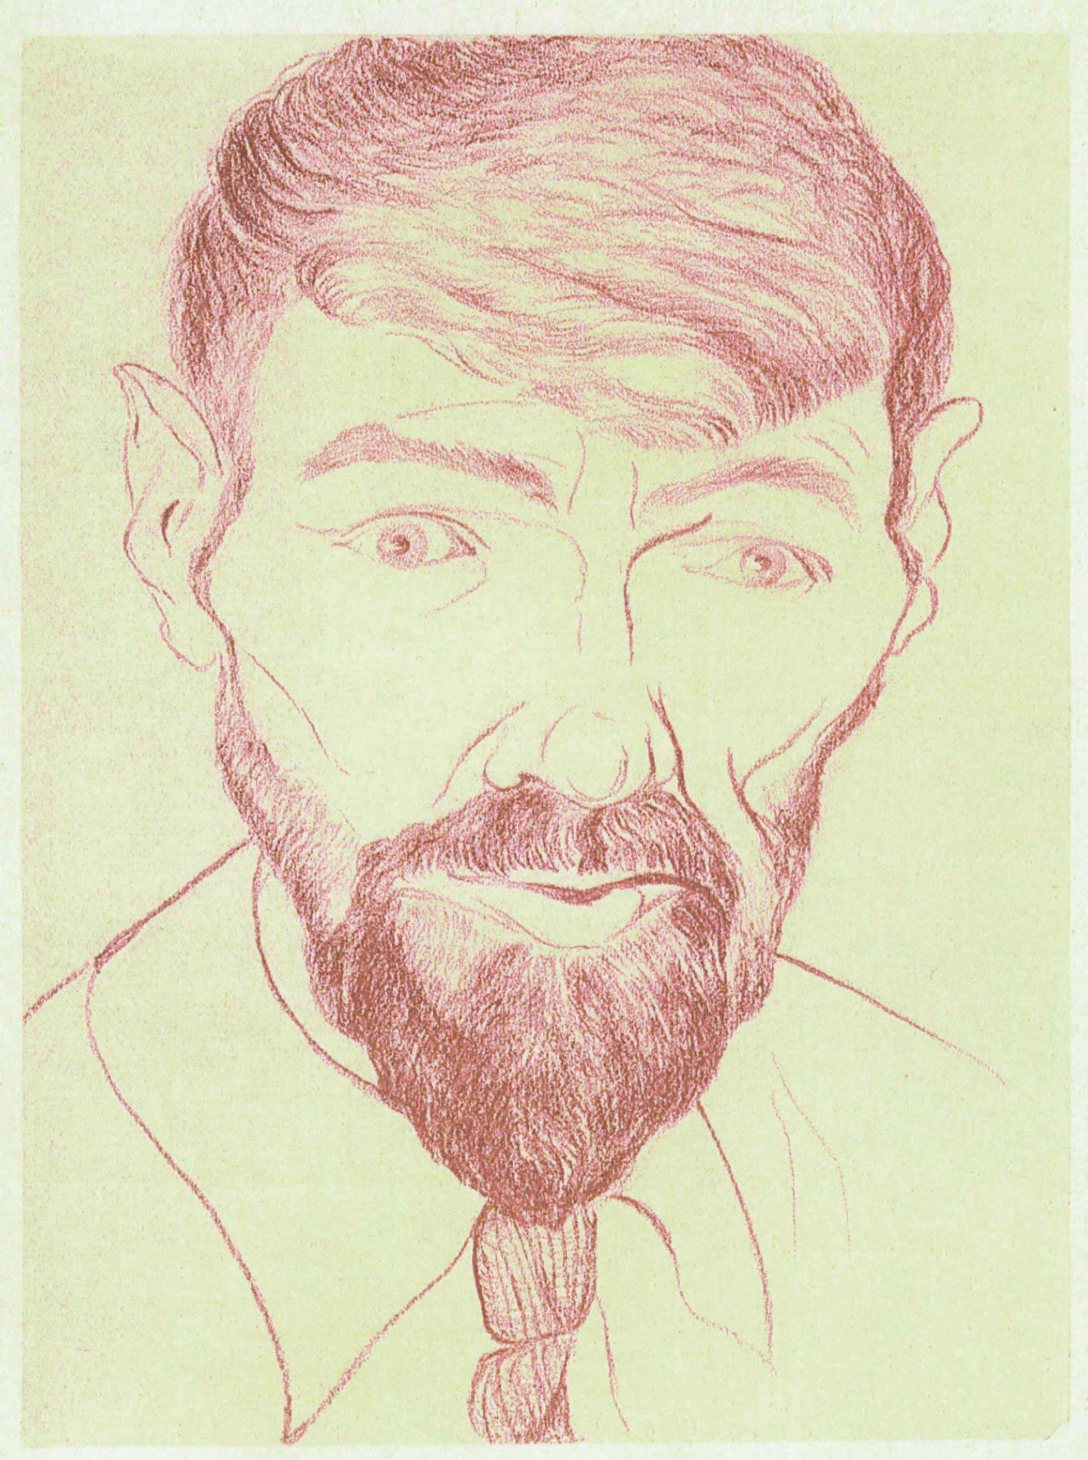 D.H. Lawrence, 1929